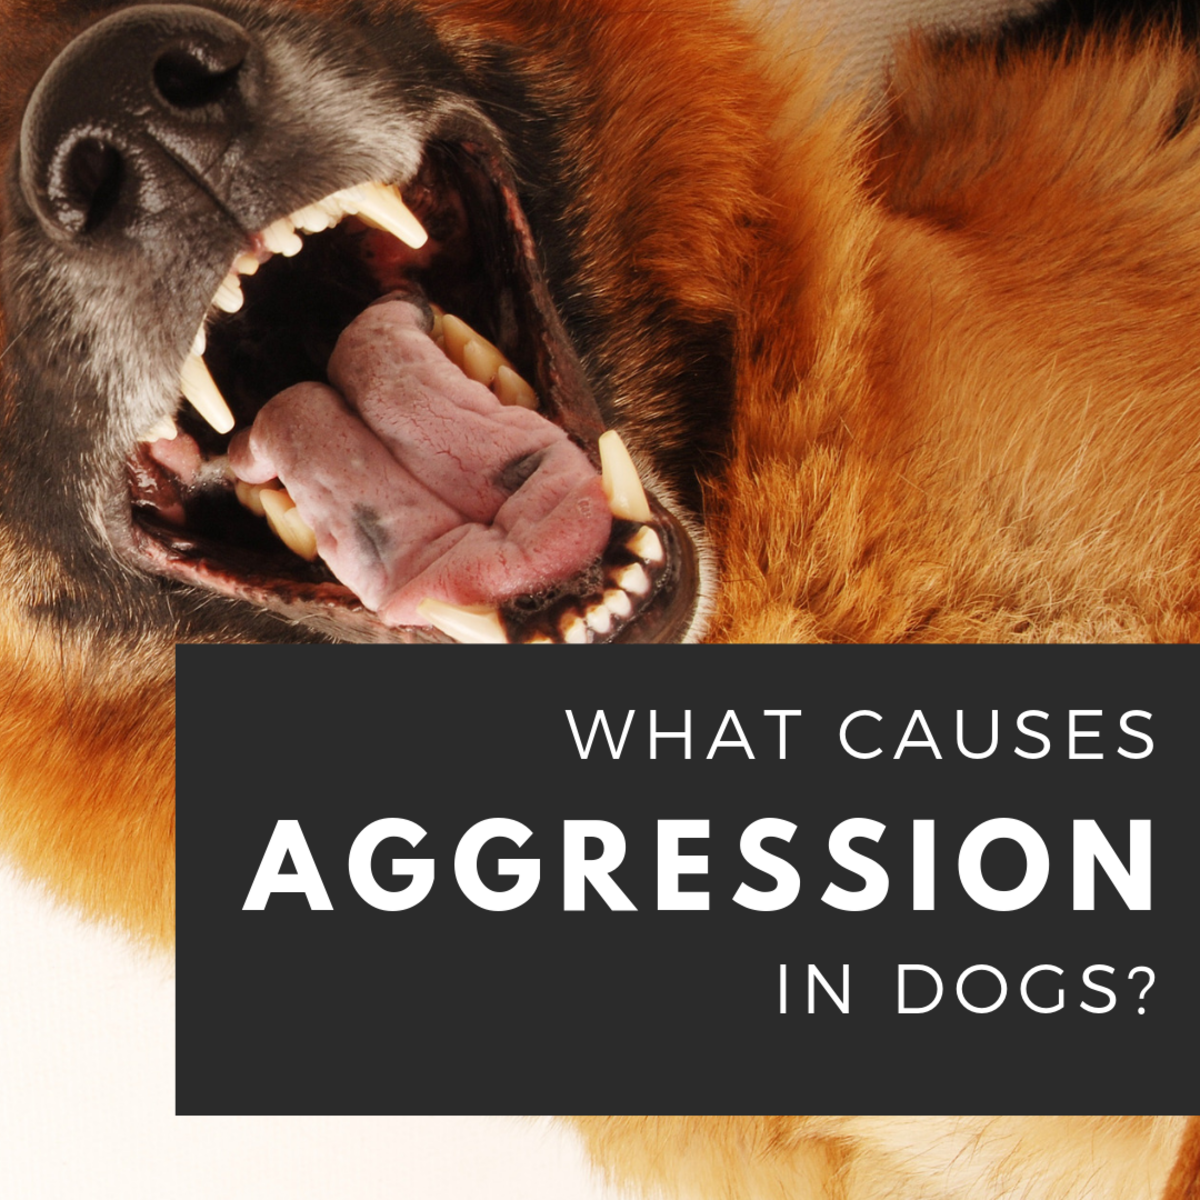 Causes of Aggression in Dogs